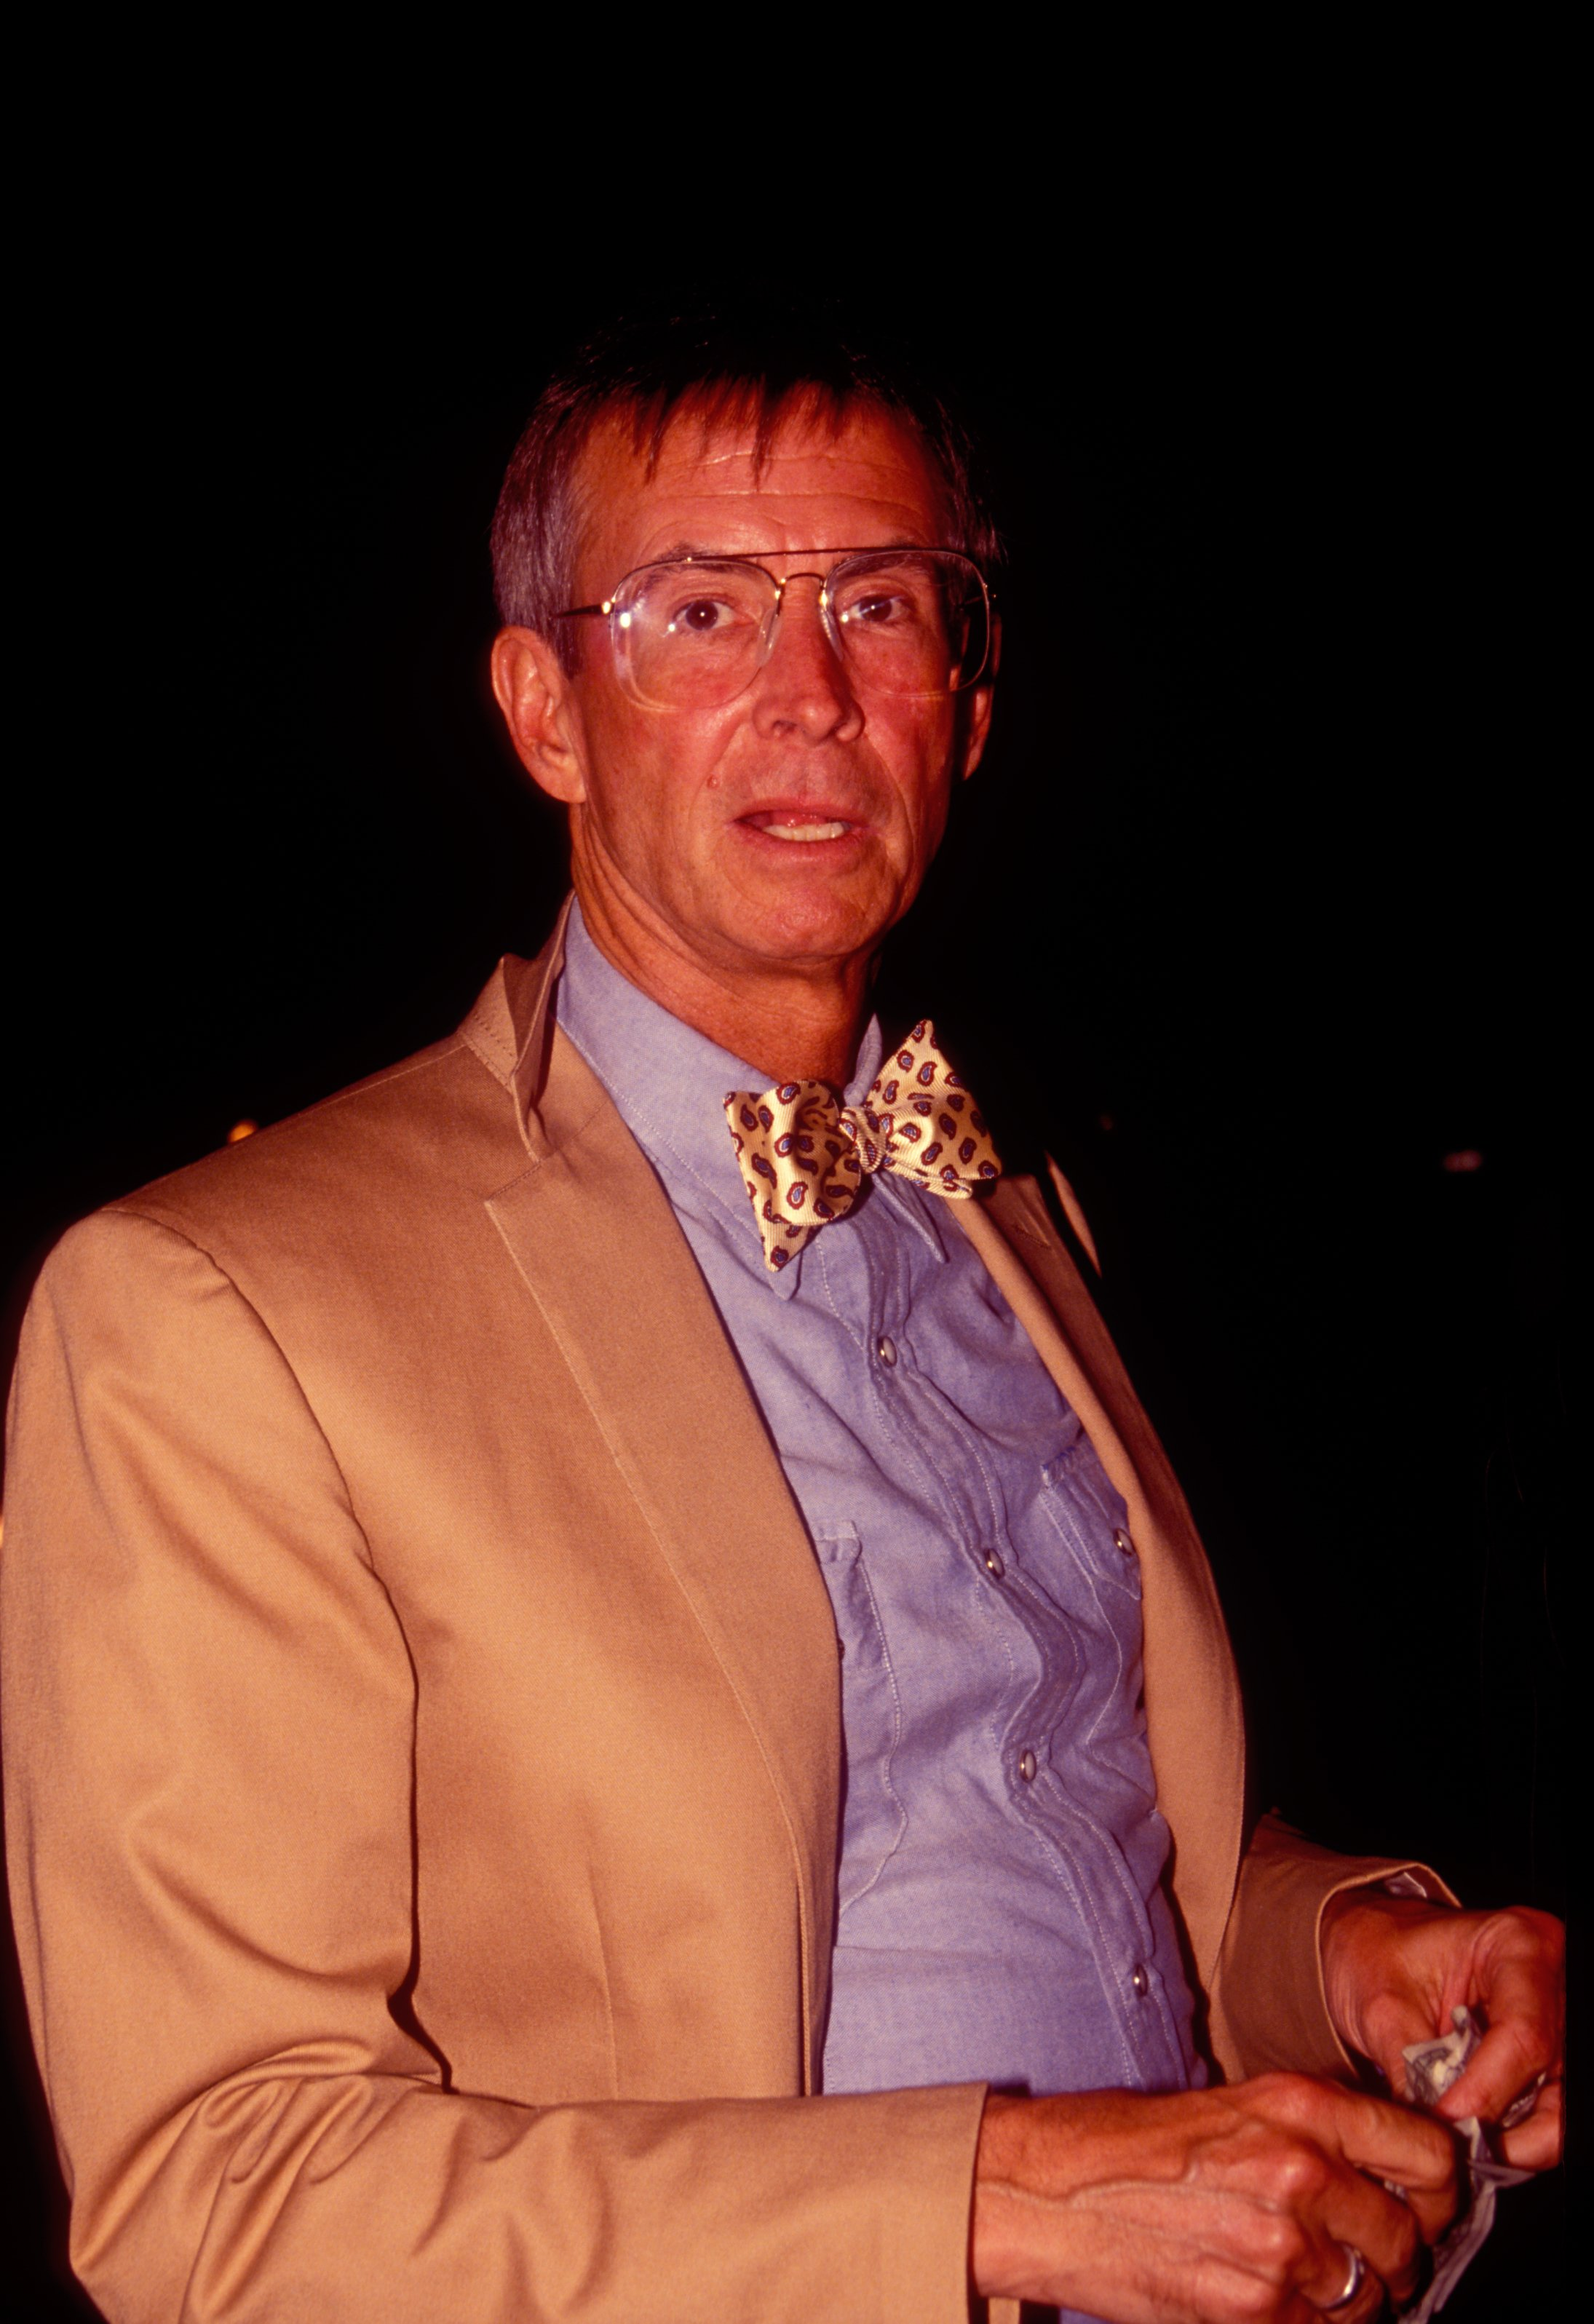 Actor Anthony Perkins leaves Spago restaurant in 1991 in Los Angeles | Photo: Shutterstock